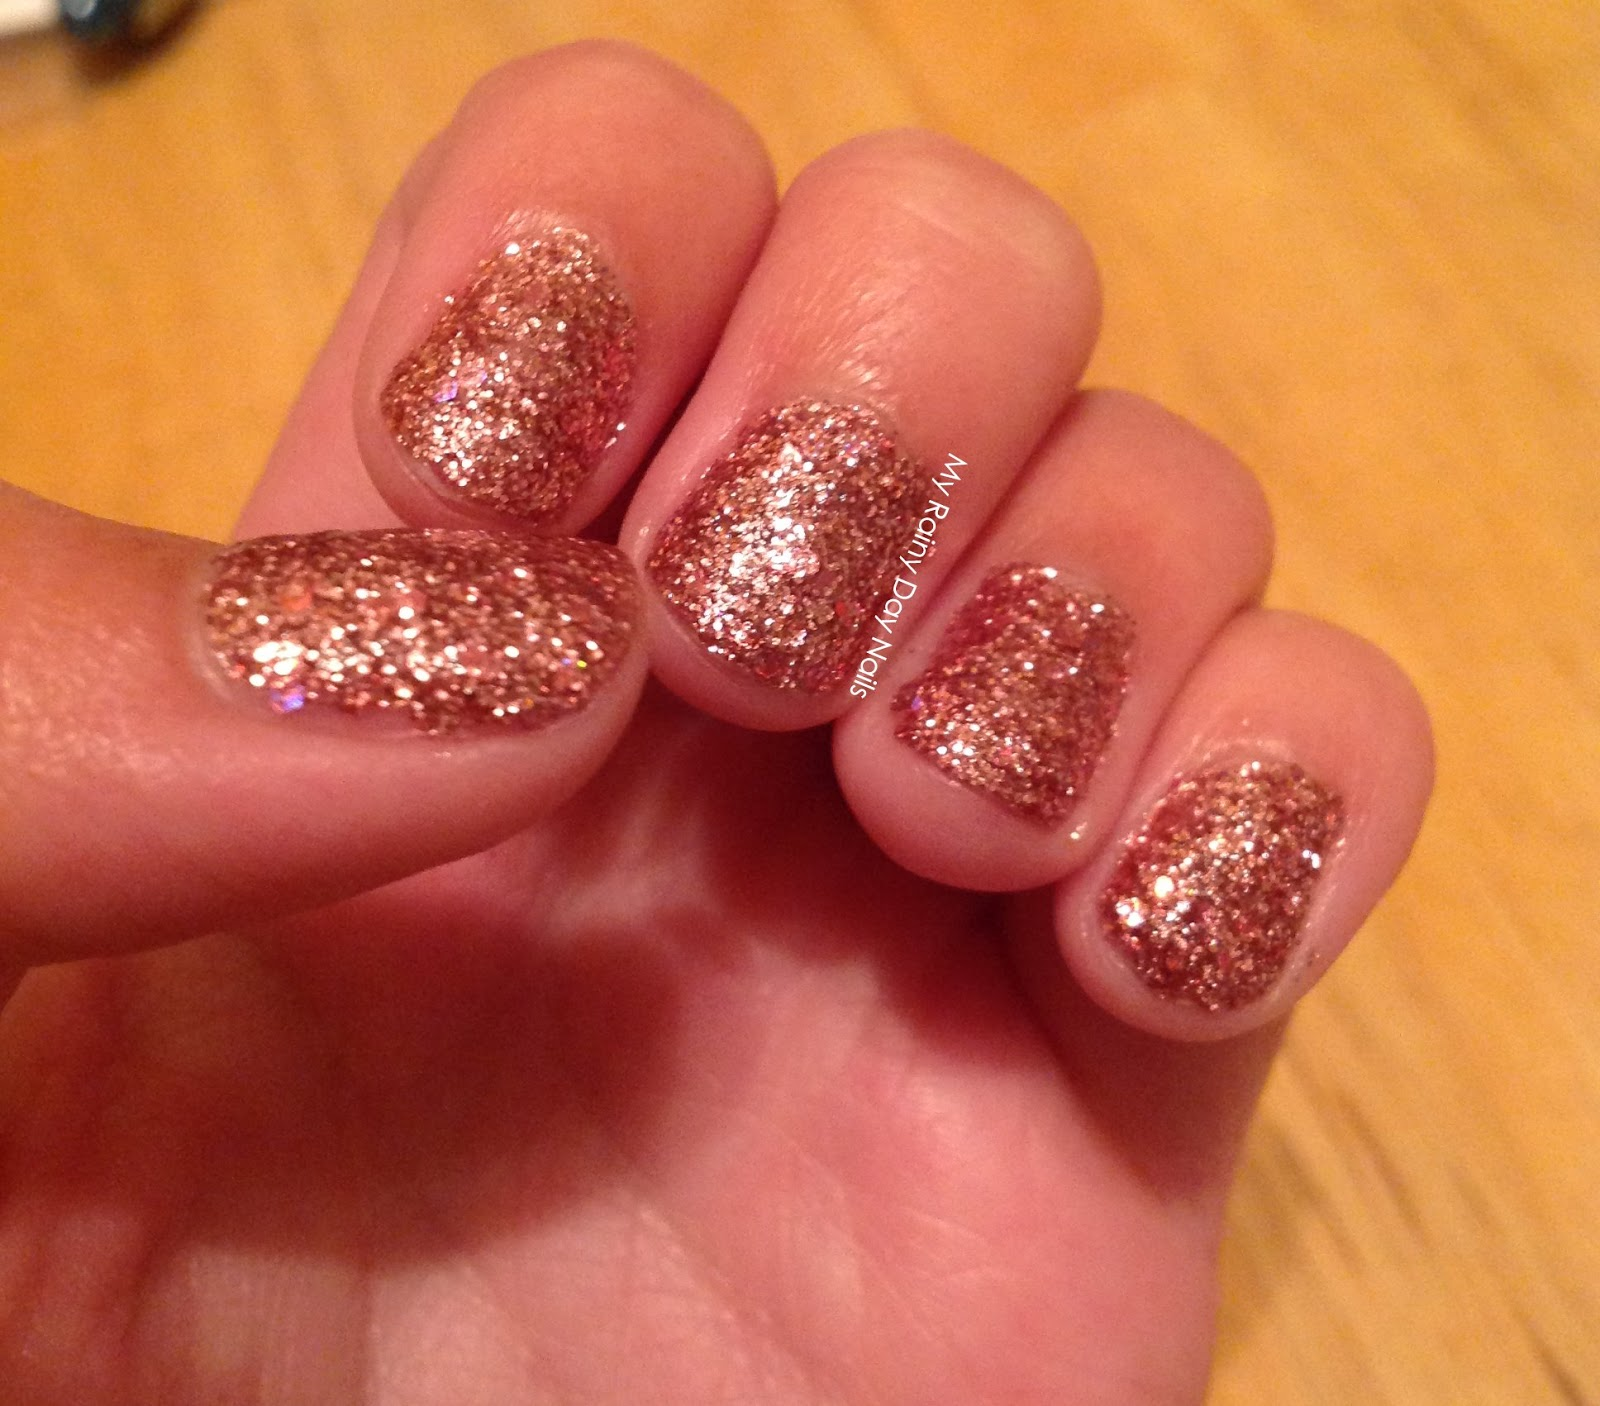 Rose Gold Nail Glitter: My Rainy Day Nails: Double Post With Rose Gold Glitter